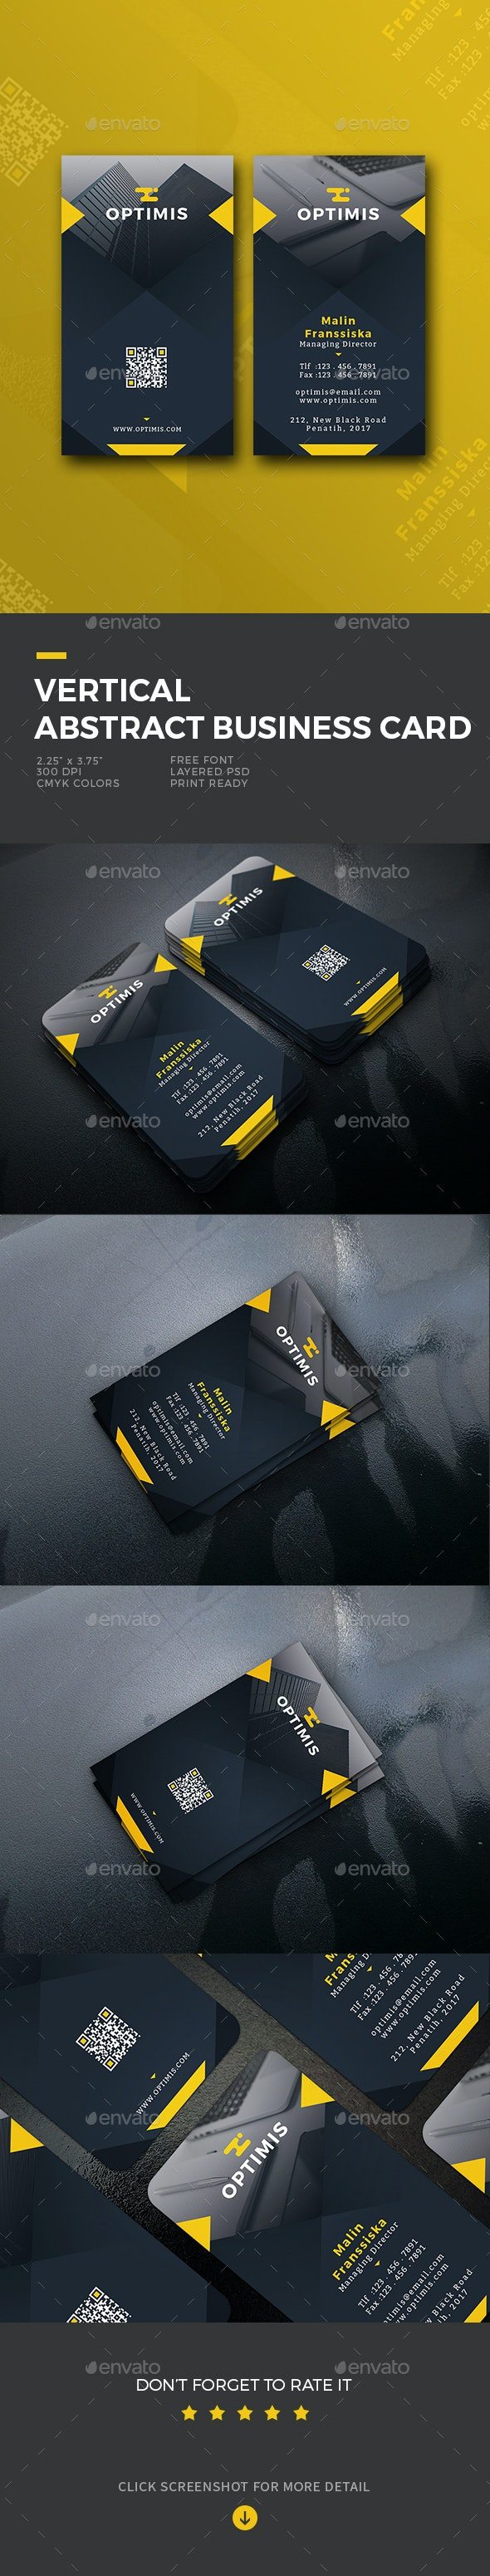 Vertical Abstract Business Card - Business Cards Print Templates